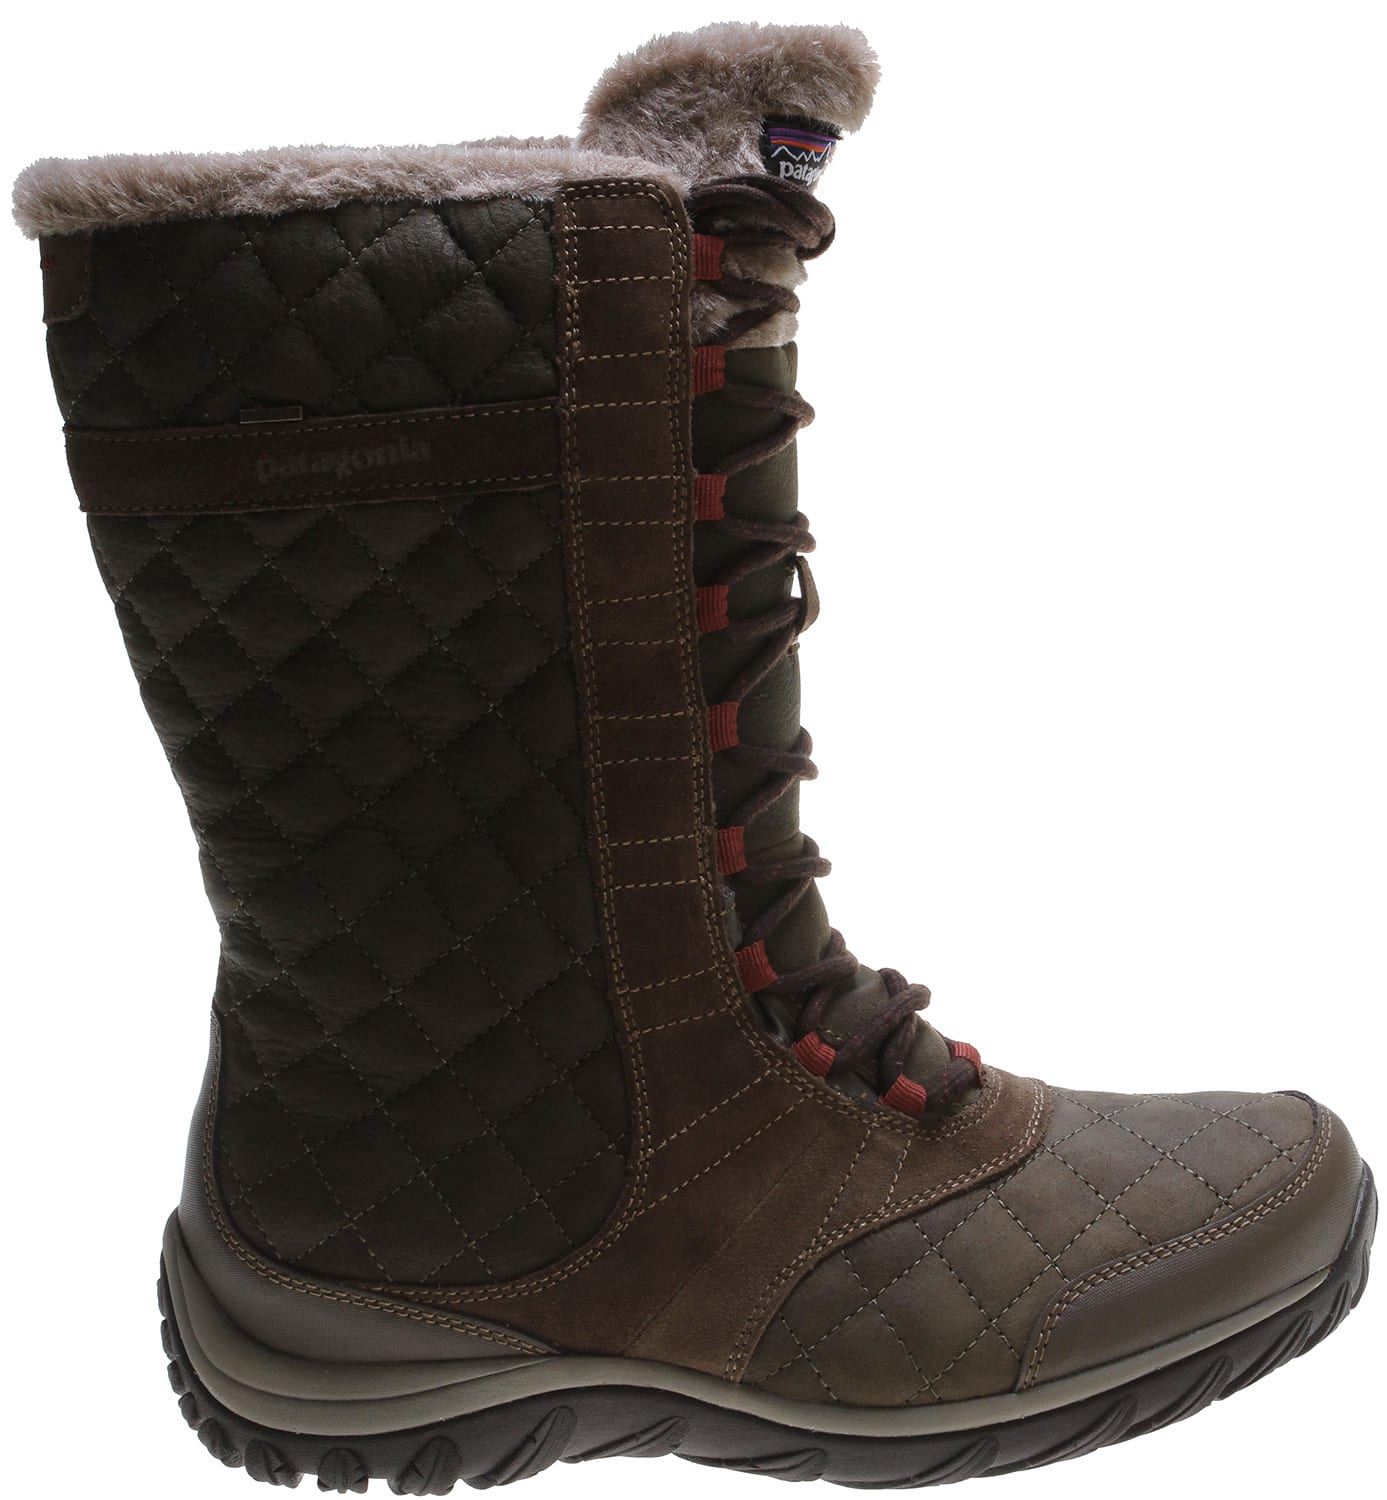 Patagonia Winter Boots Women: Patagonia Wintertide High Waterproof Boots